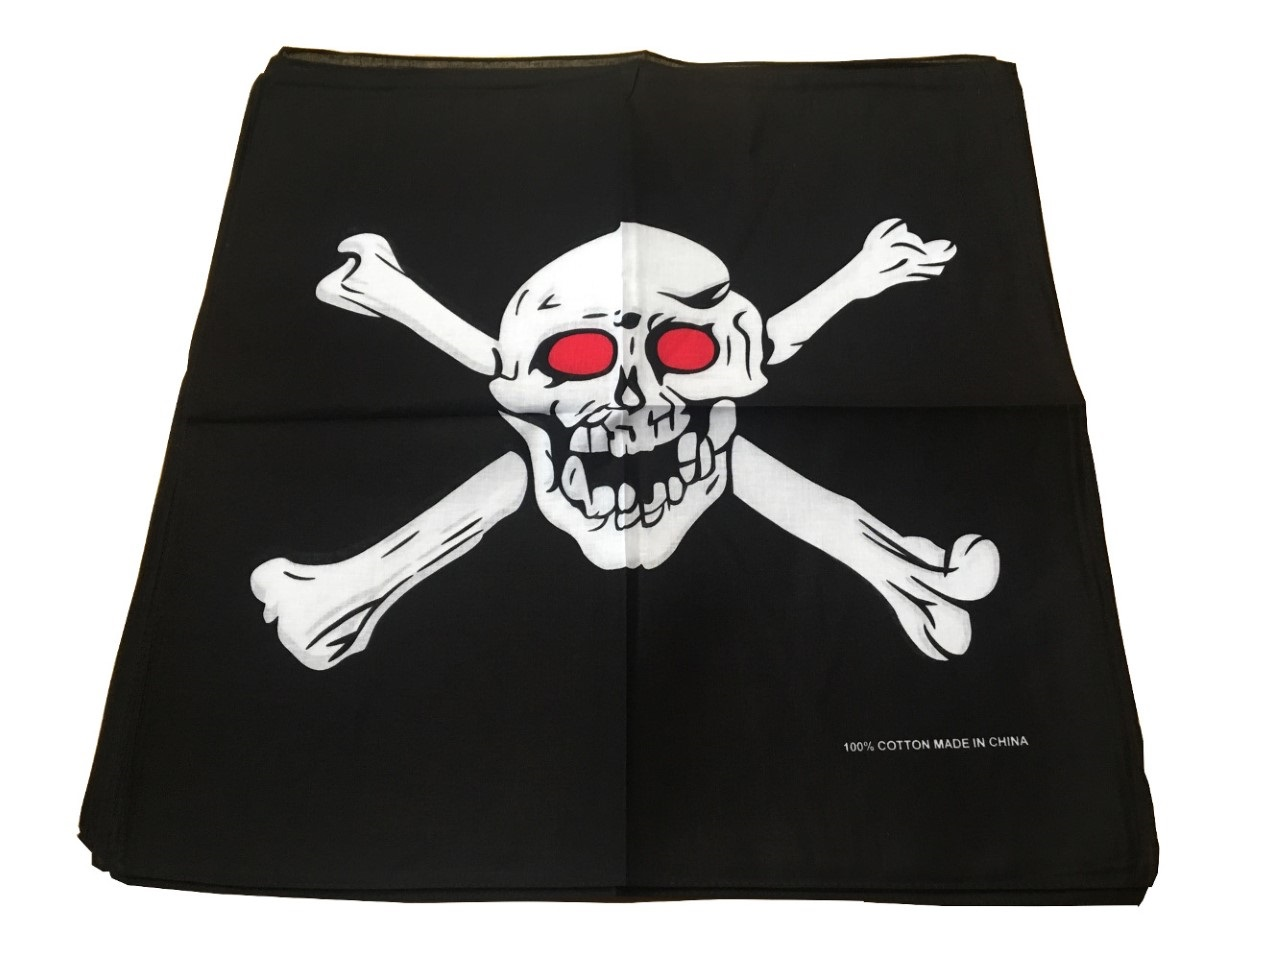 "Skull Bandanas Crossbones Red Eyes (12 PK) 22"" x 22"" 100% Cotton"